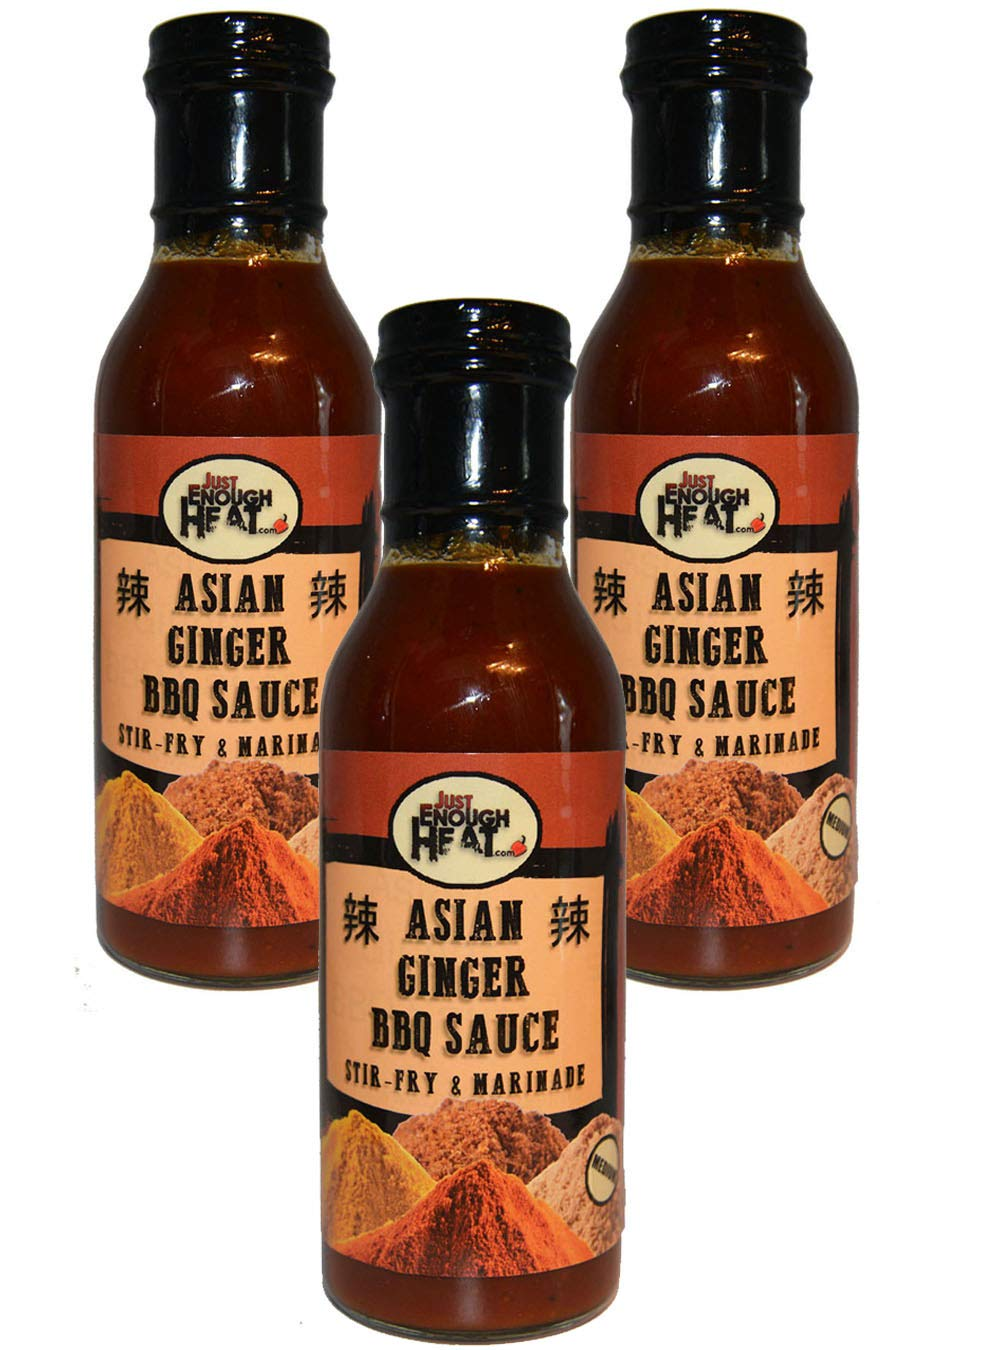 Amazon Com Asian Ginger Bbq Sauce Spicy Stir Fry Wing Sauce Medium Heat 3 Pack By Just Enough Heat Grocery Gourmet Food